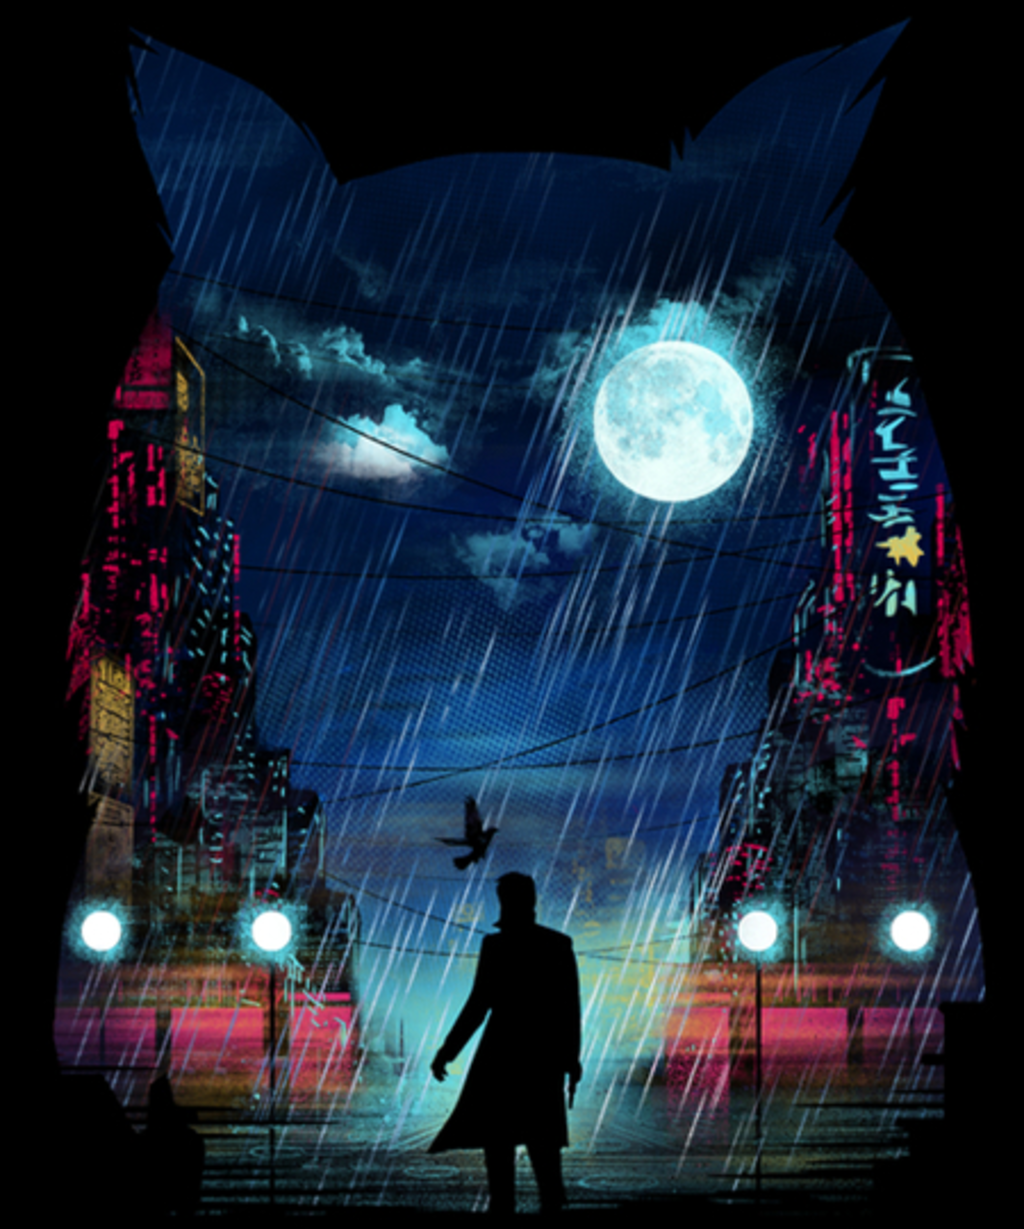 Qwertee: Tears in the Rain